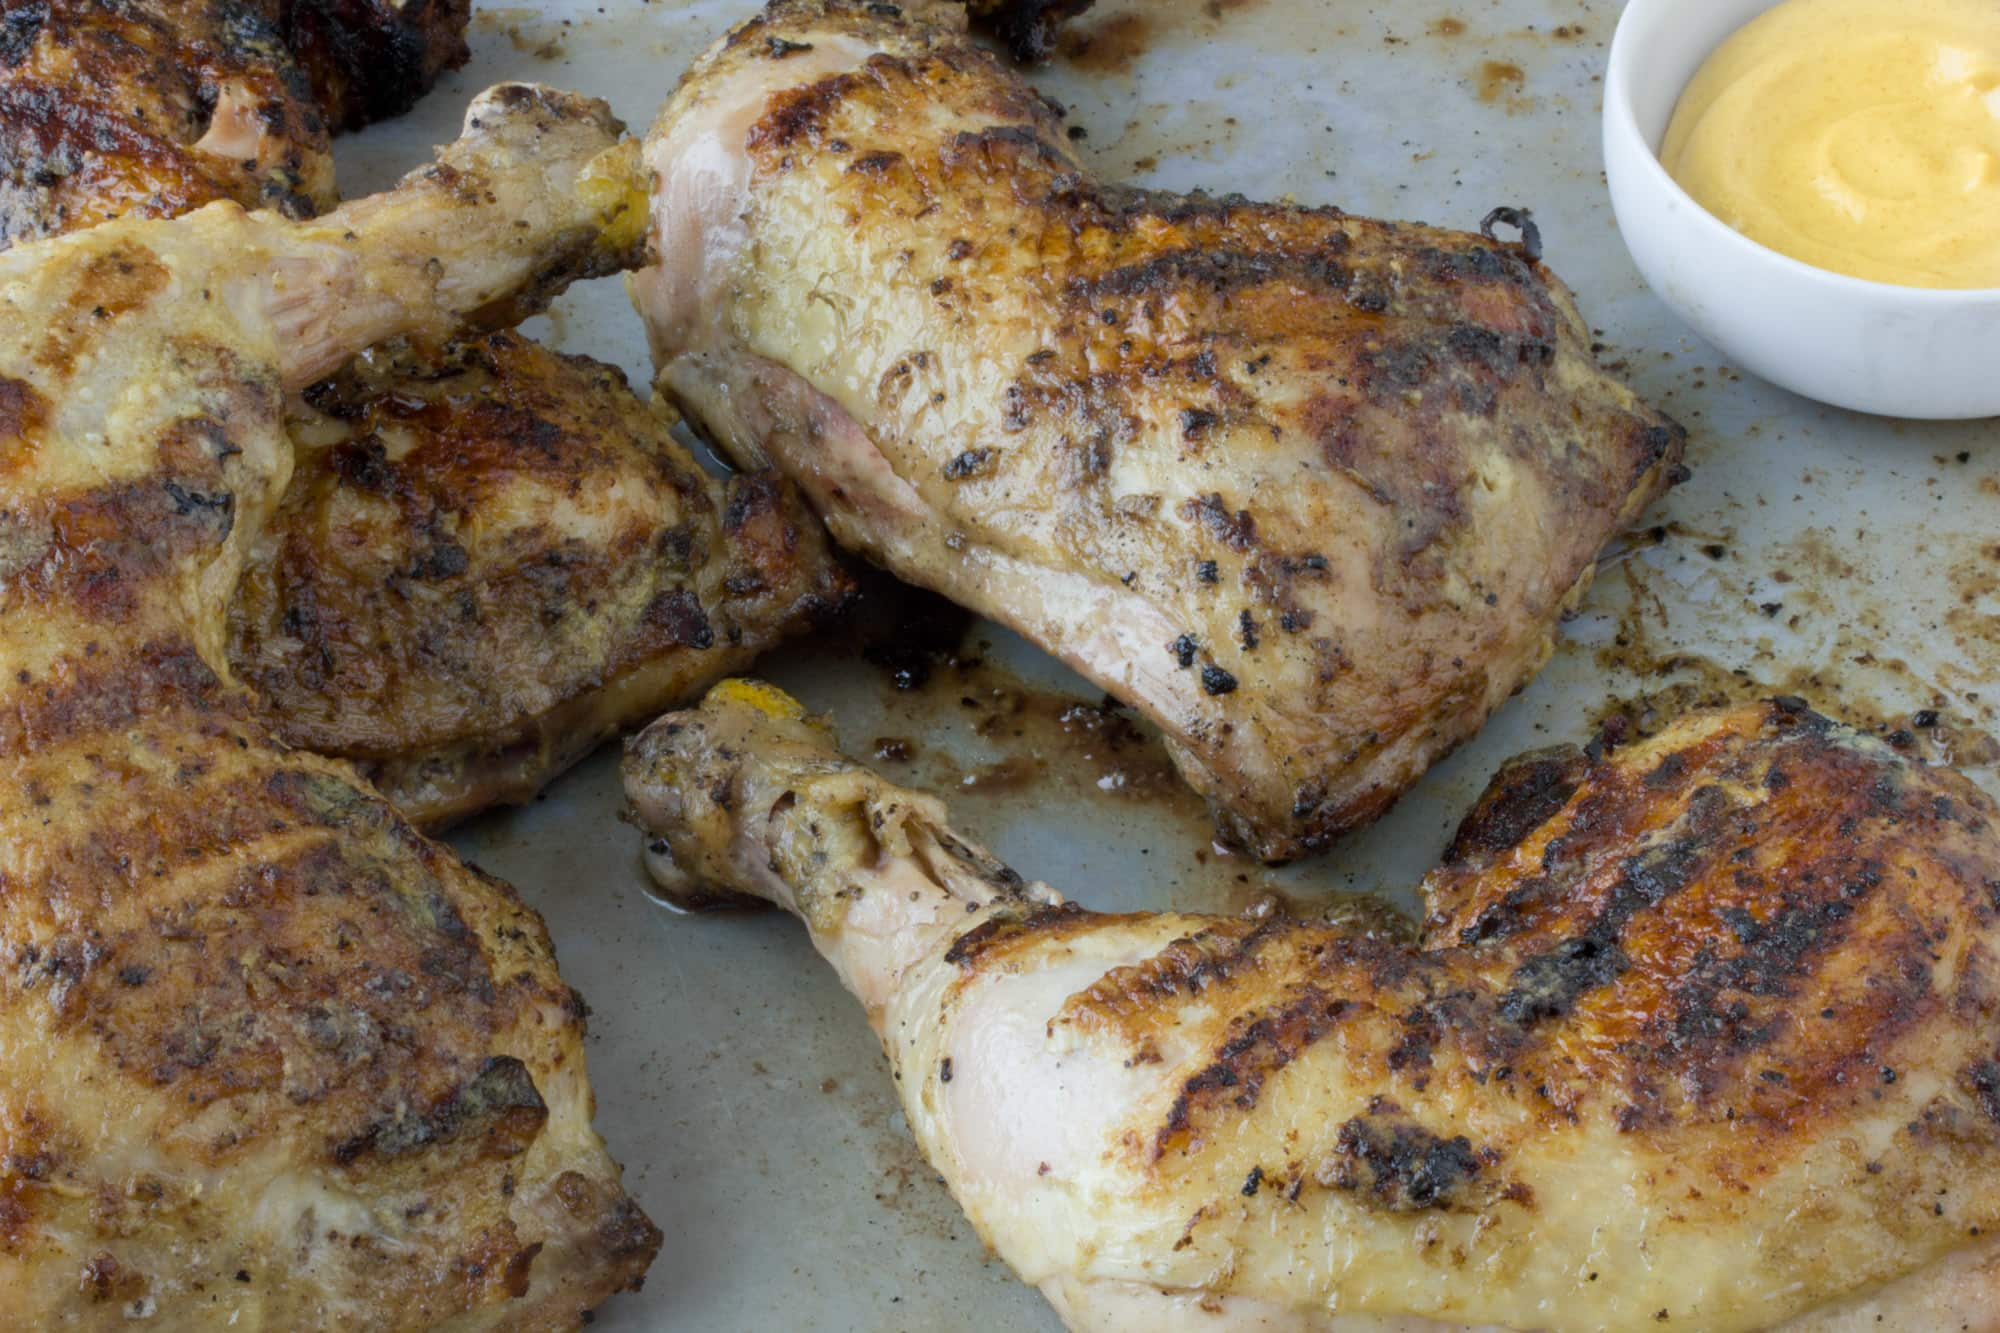 Recipe: Grilled Chicken Legs with Dijon & White Wine Glaze